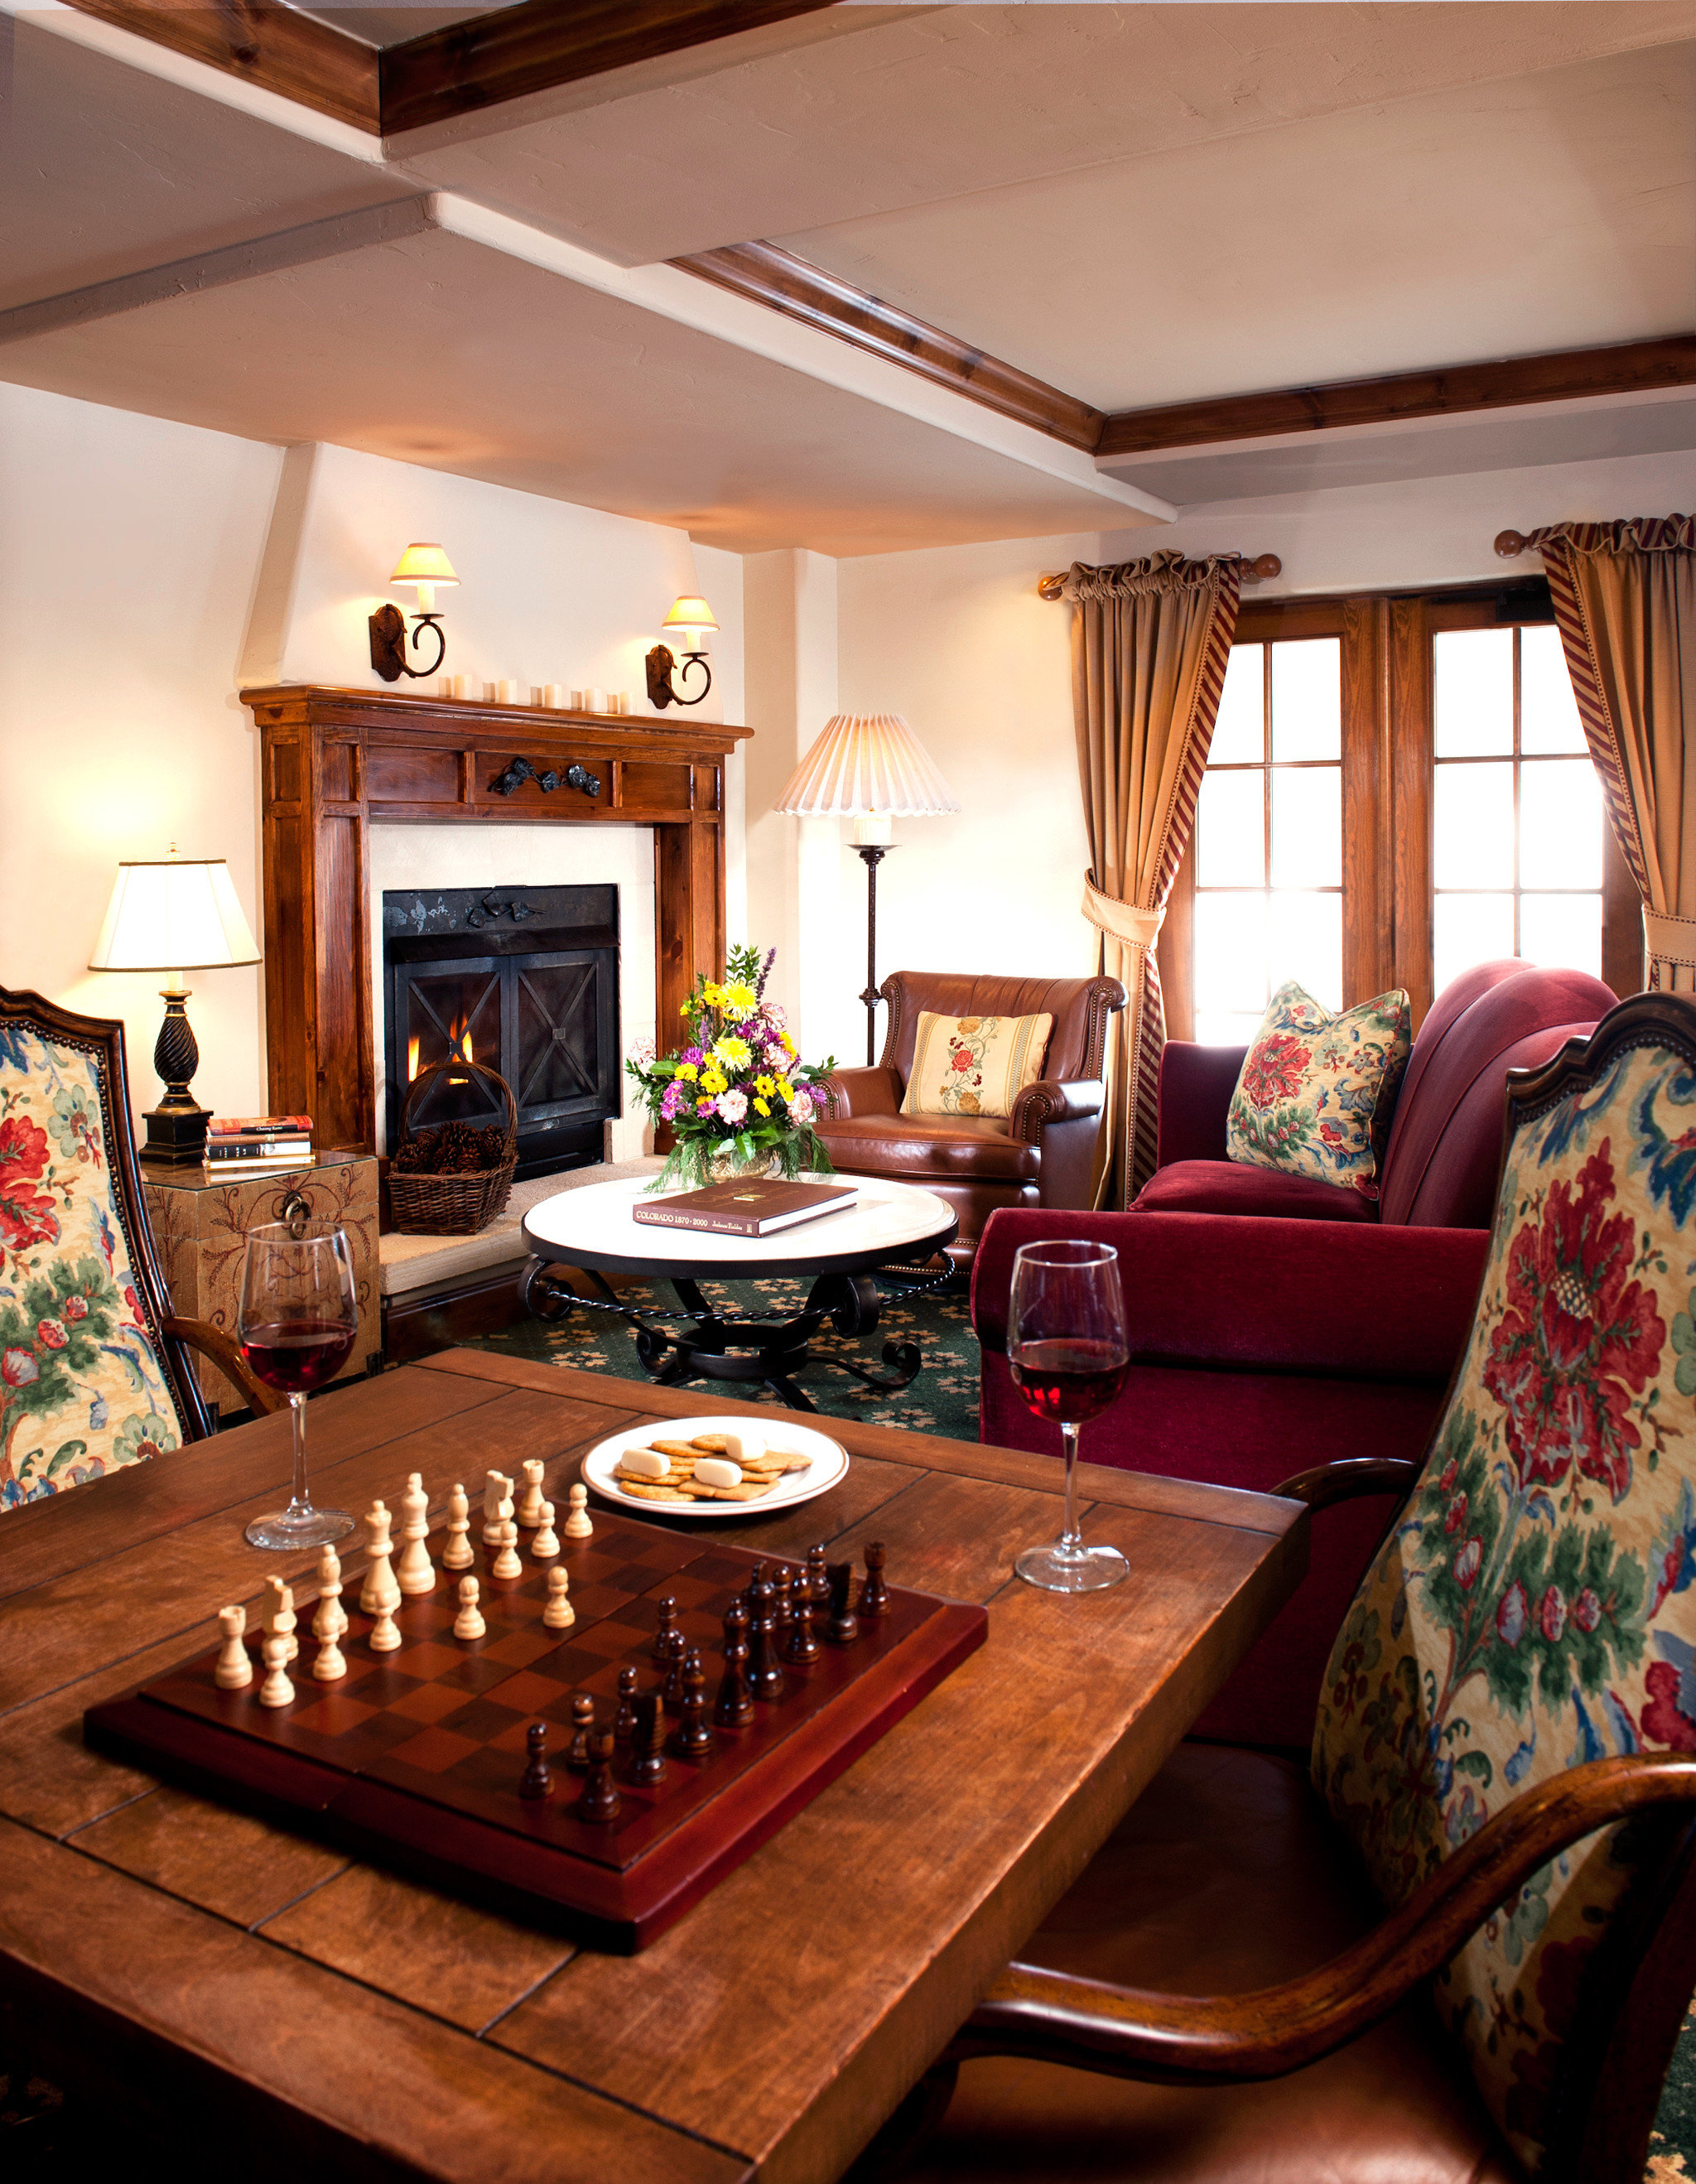 Fireplace Lounge Resort Romantic living room property home house cottage Suite farmhouse